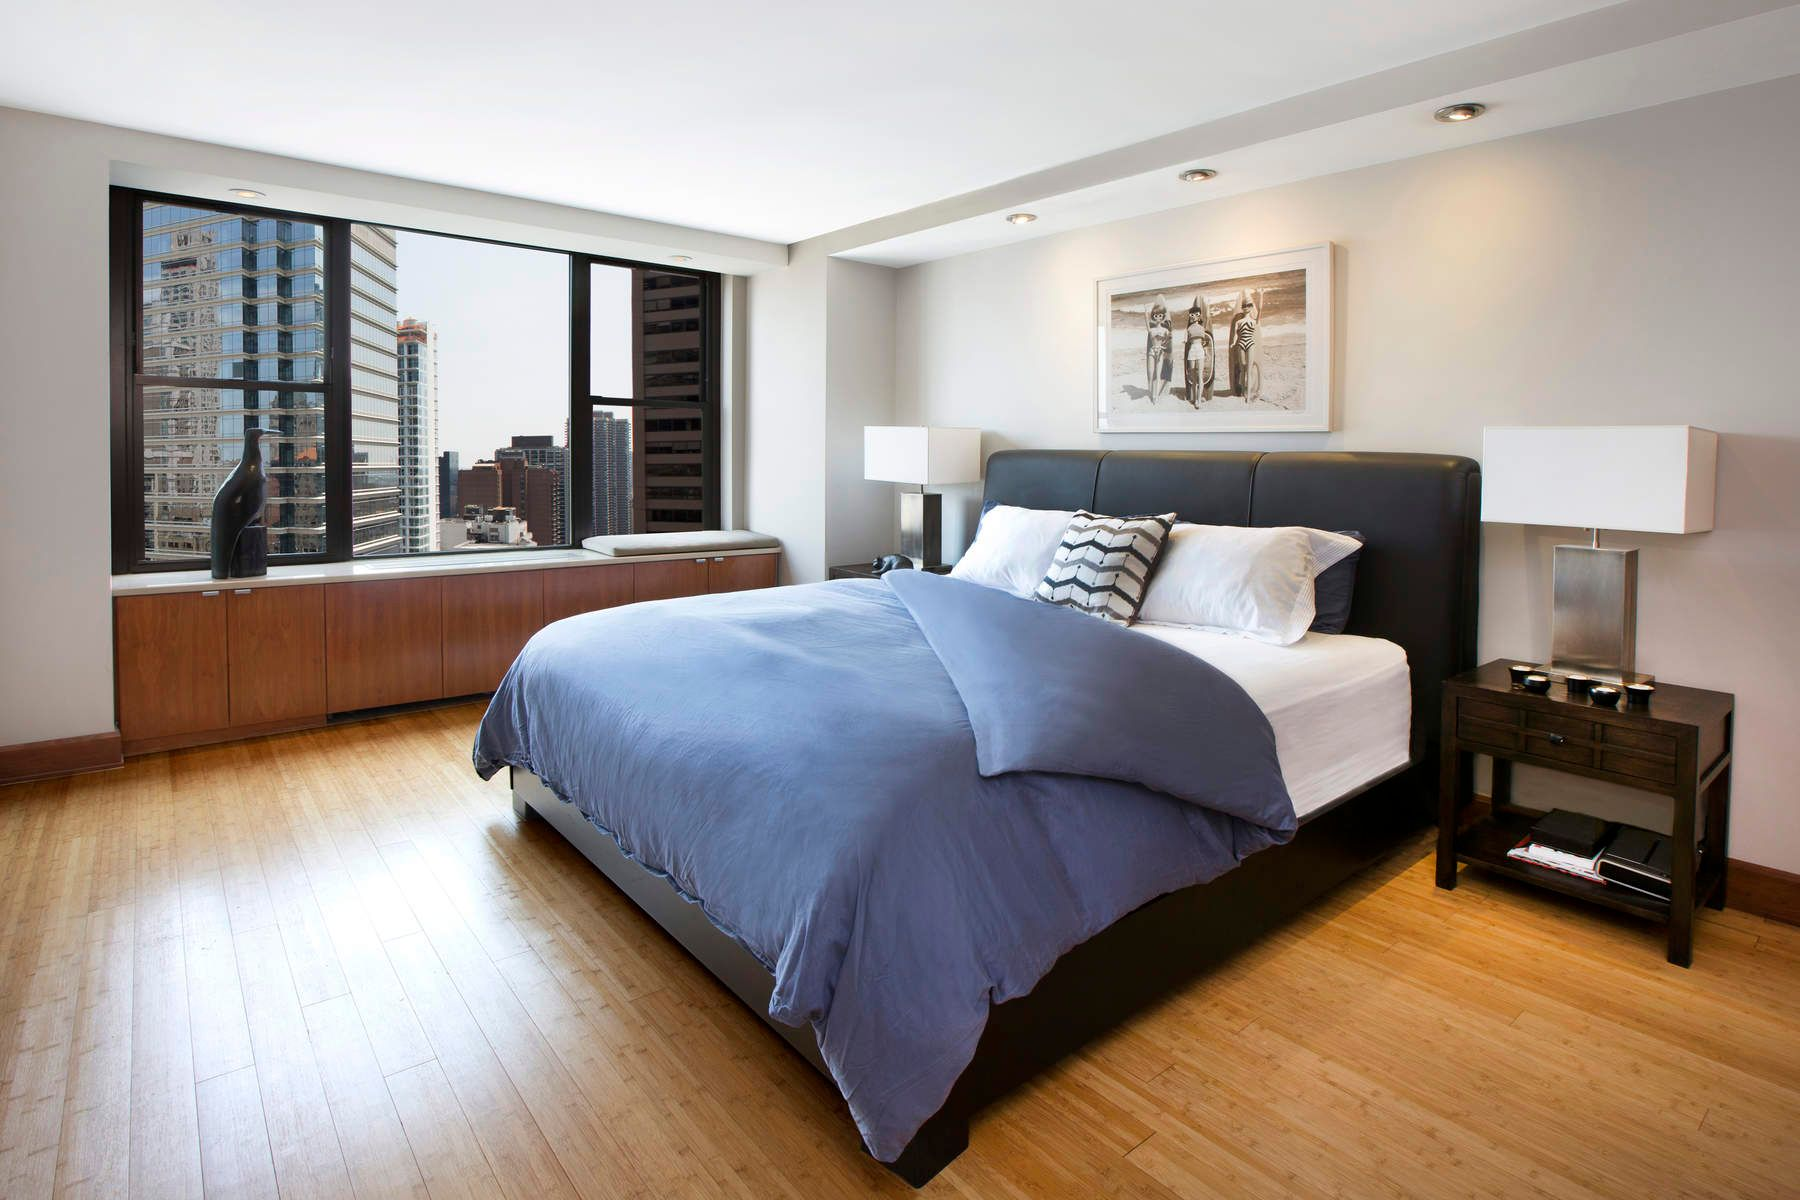 Martine Capdevielle_Luxury Real Estate NYC_117 EAST 57TH STREET APT 34h8.jpg